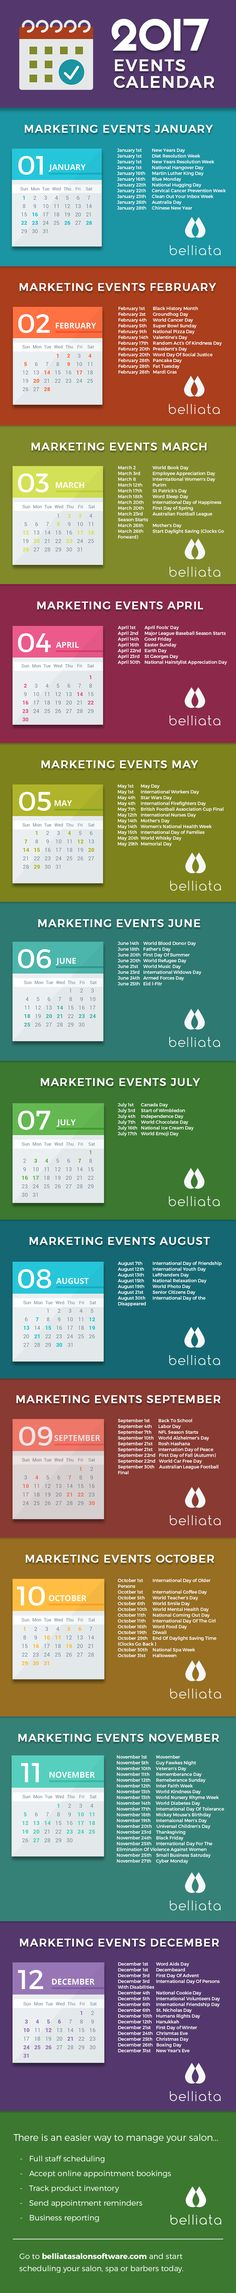 Is your salon marketing plan 2017 ready to go? Belliata Salon Software have created a marketing calendar to help you drive new & retain clients.